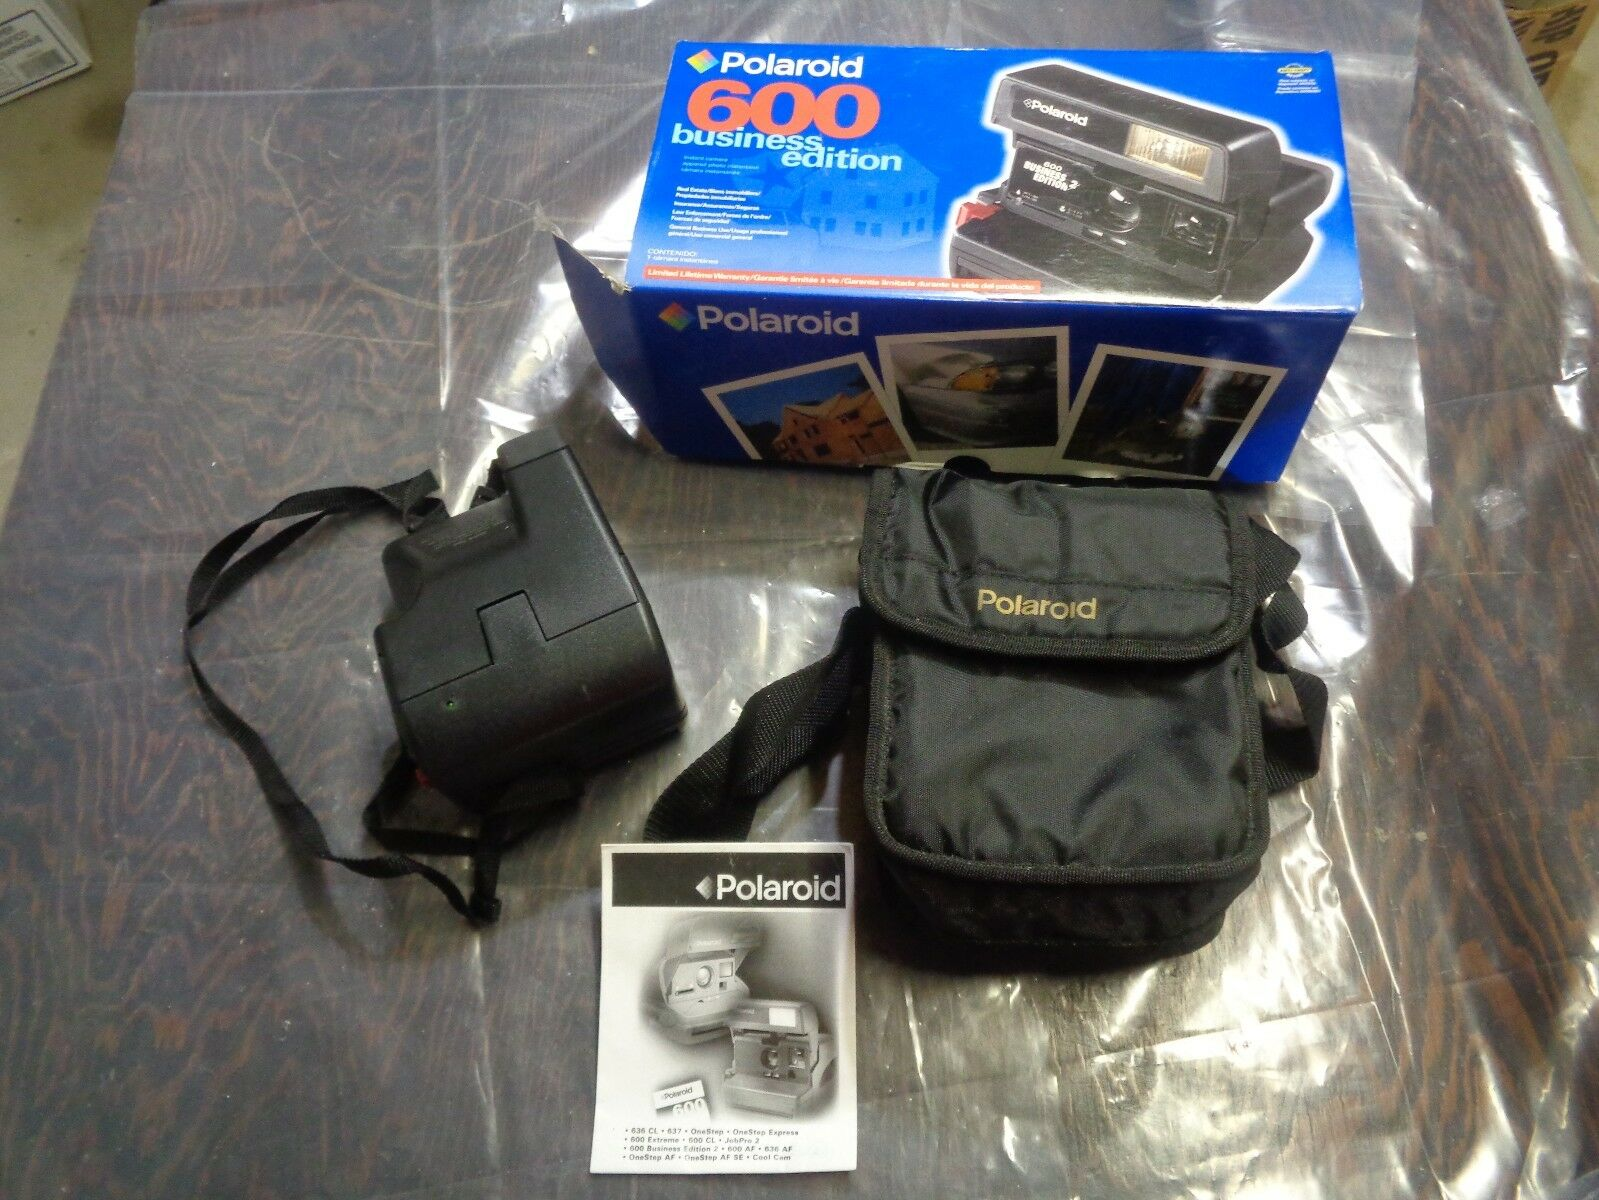 Polaroid 600 Business Edition 2 Instant Film Camera w/ Manual, Box,Carrying  Case 1 of 7 See More